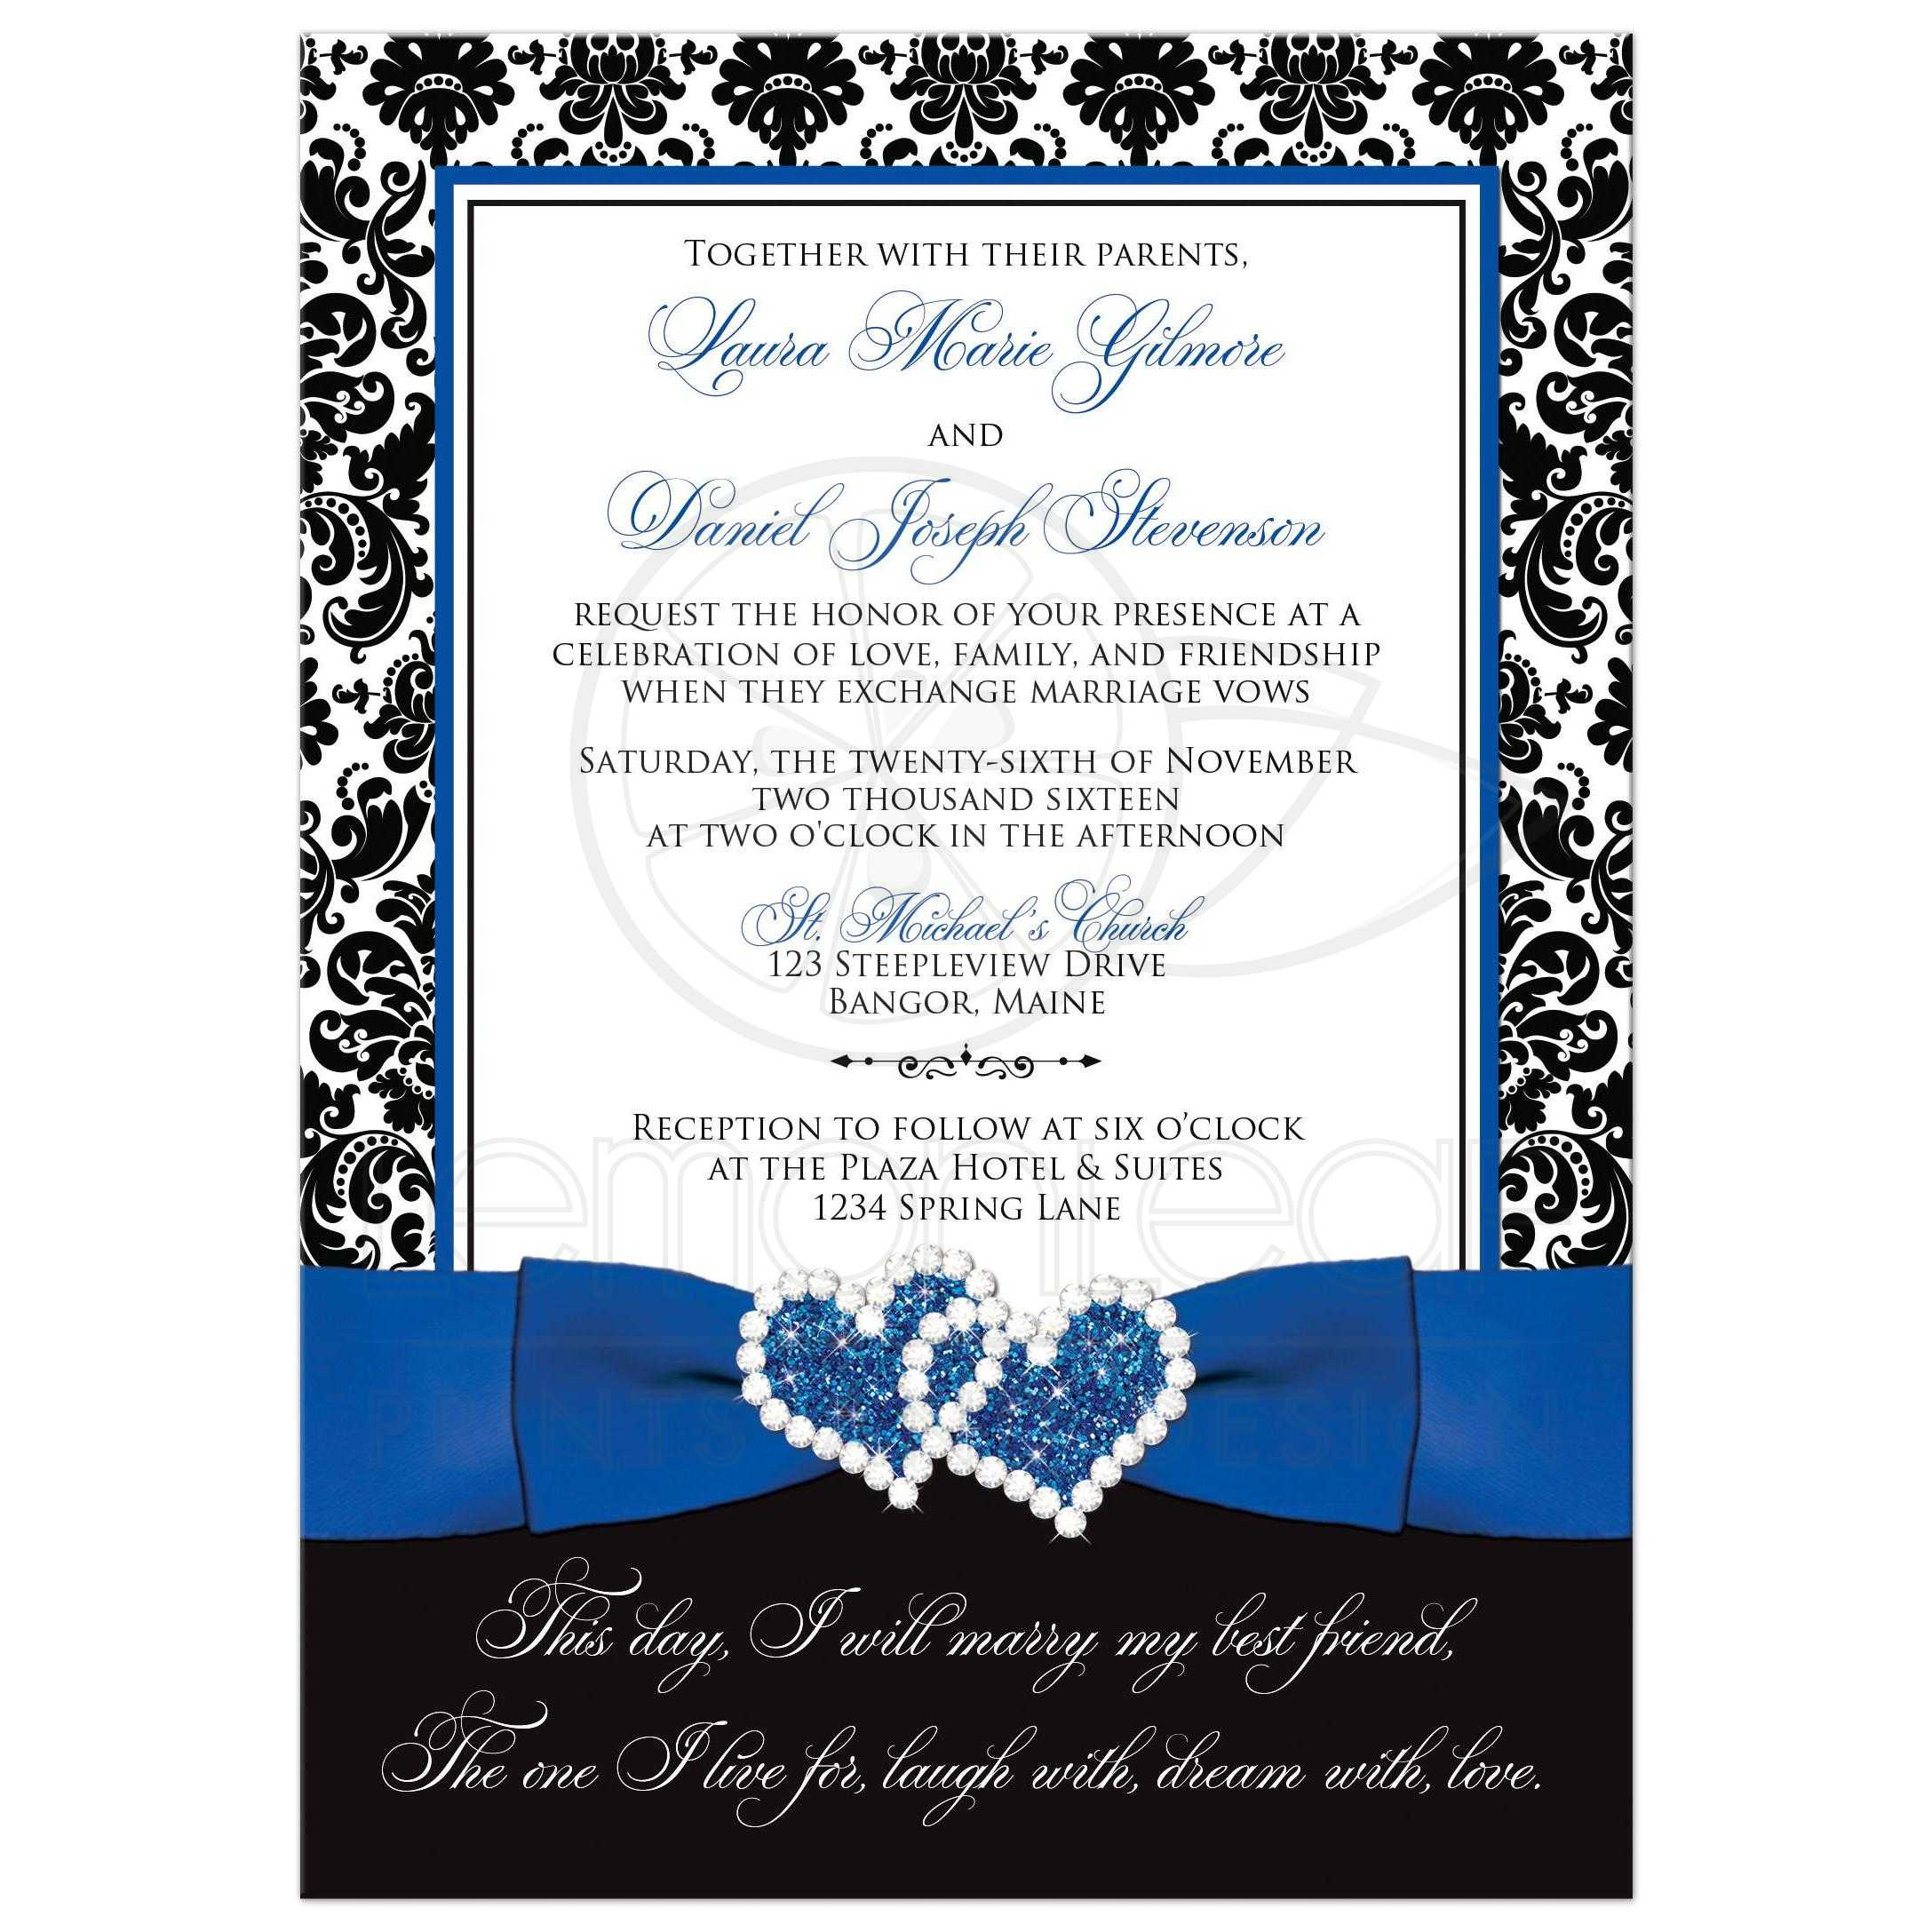 Best Royal Blue Black And White Damask Photo Template Wedding Invites With Ribbon